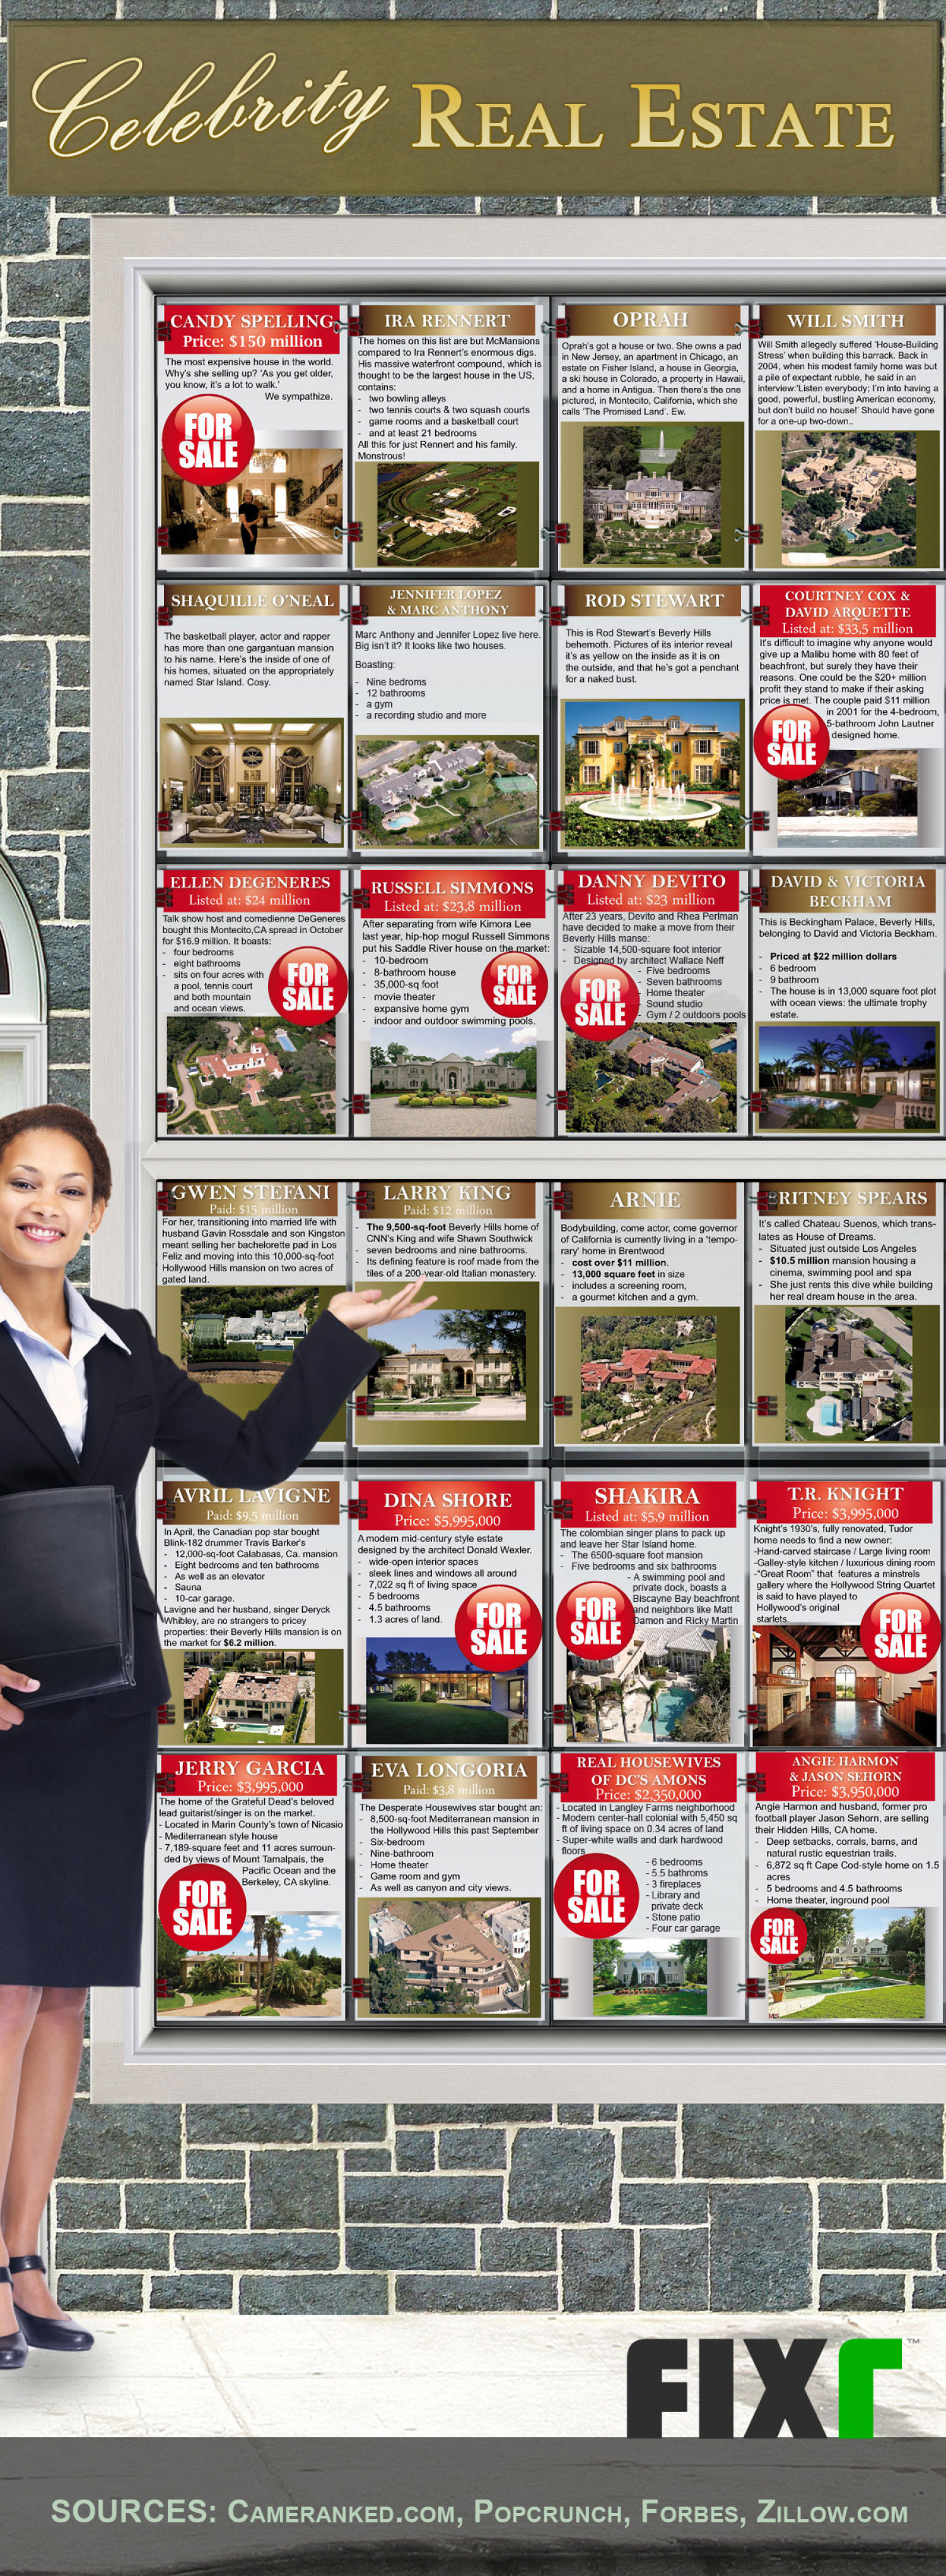 Celebrity Real Estate Infographic